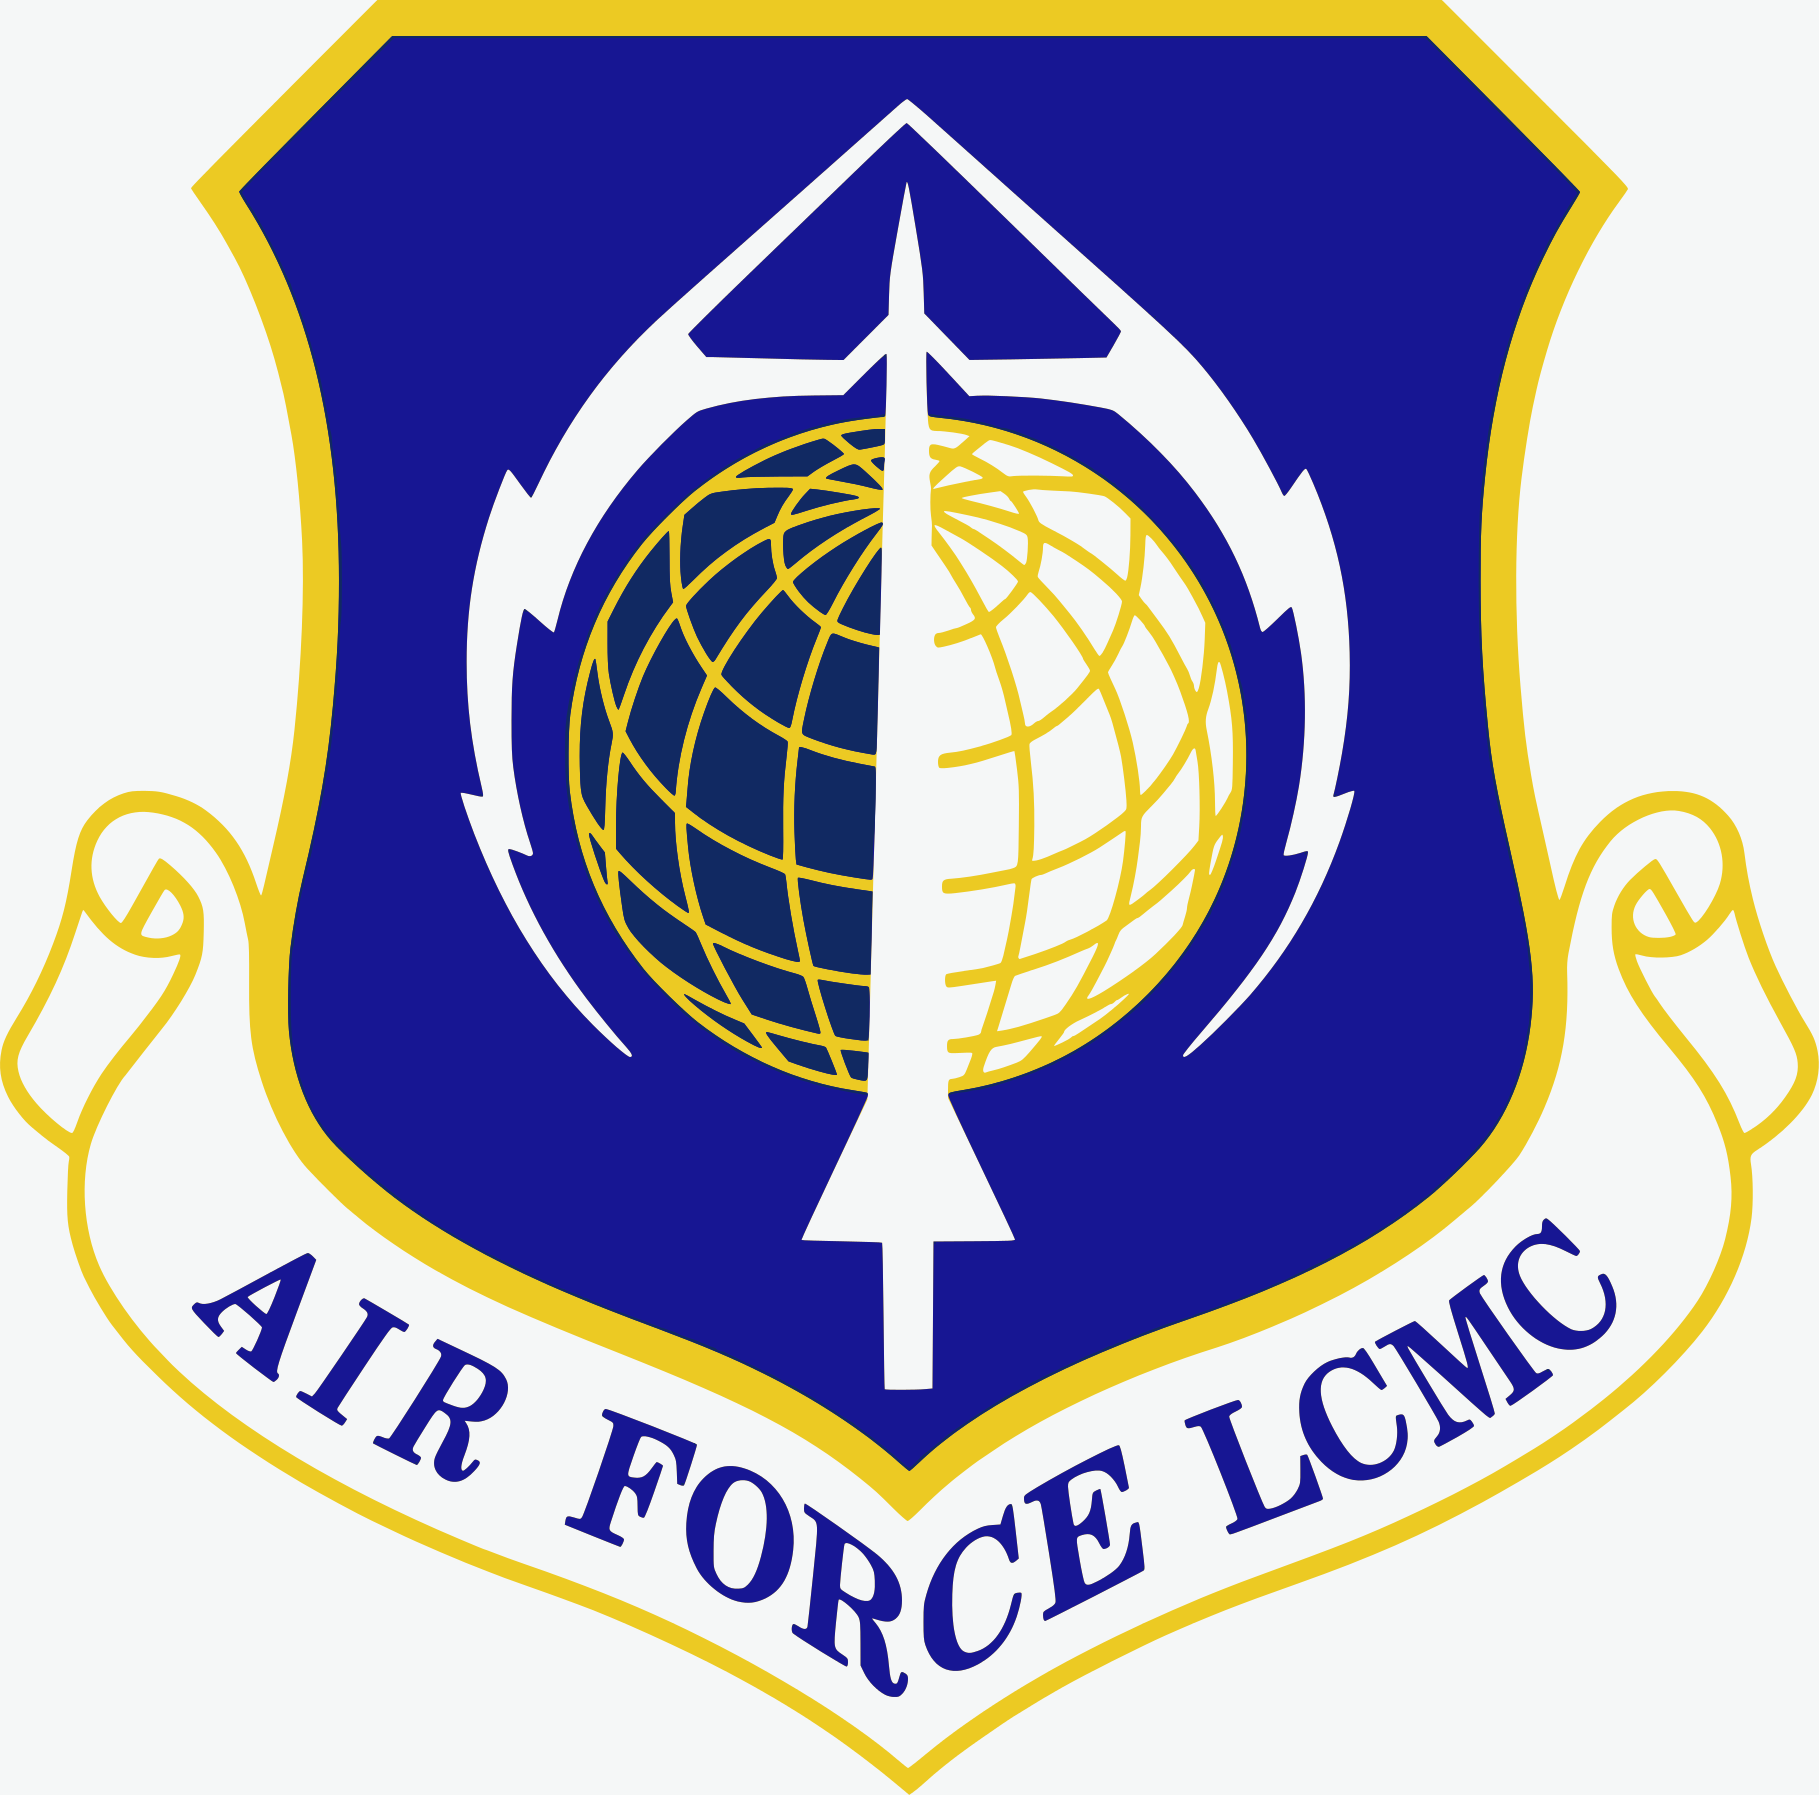 Browse and download air force logo png pictures 29368 free icons browse and download air force logo png pictures voltagebd Images